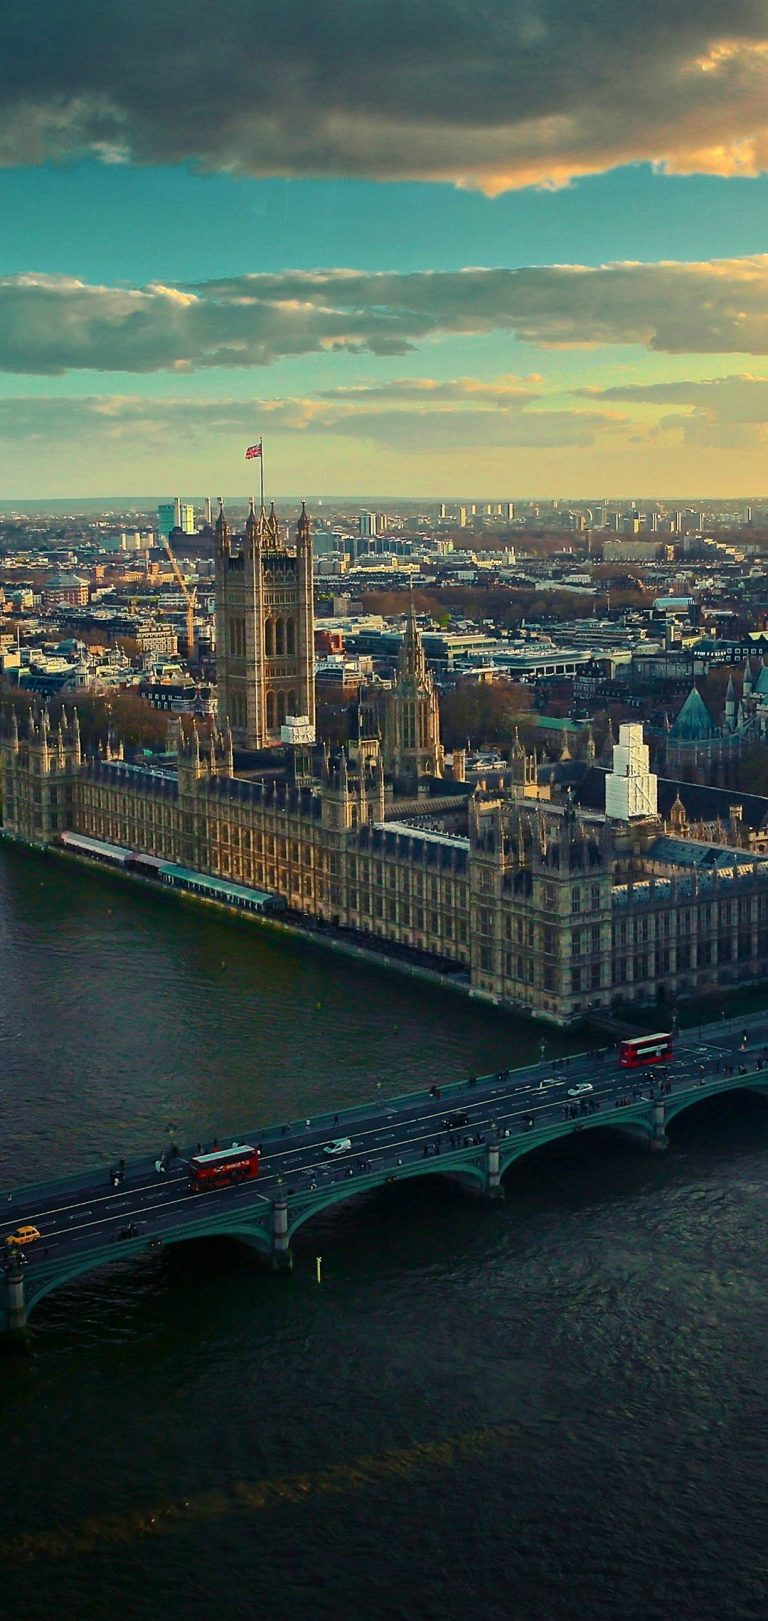 London Wallpaper 1080x2280 768x1621